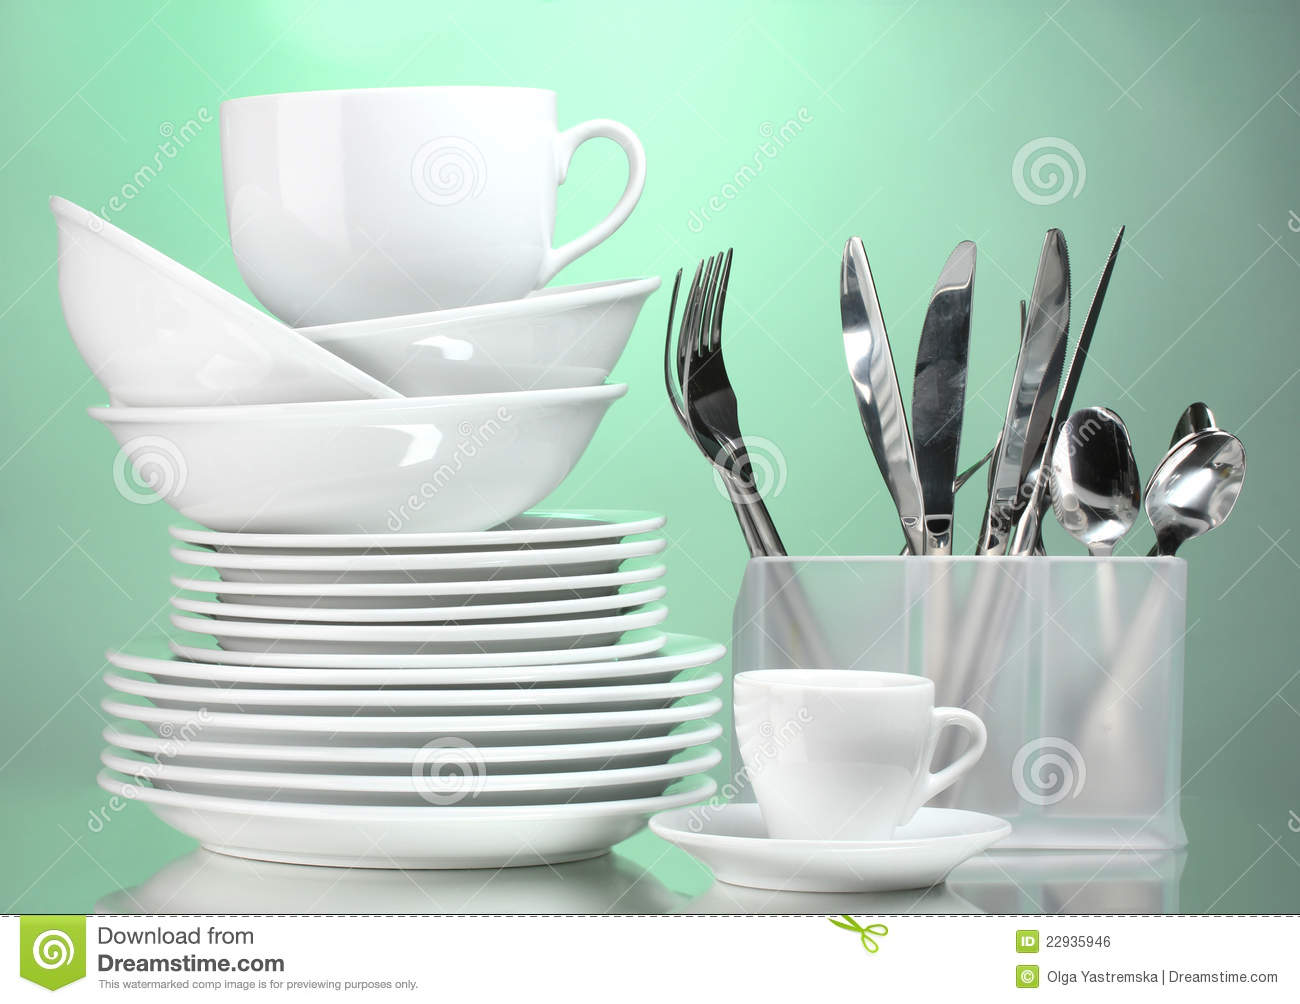 Sparkling clean dishes